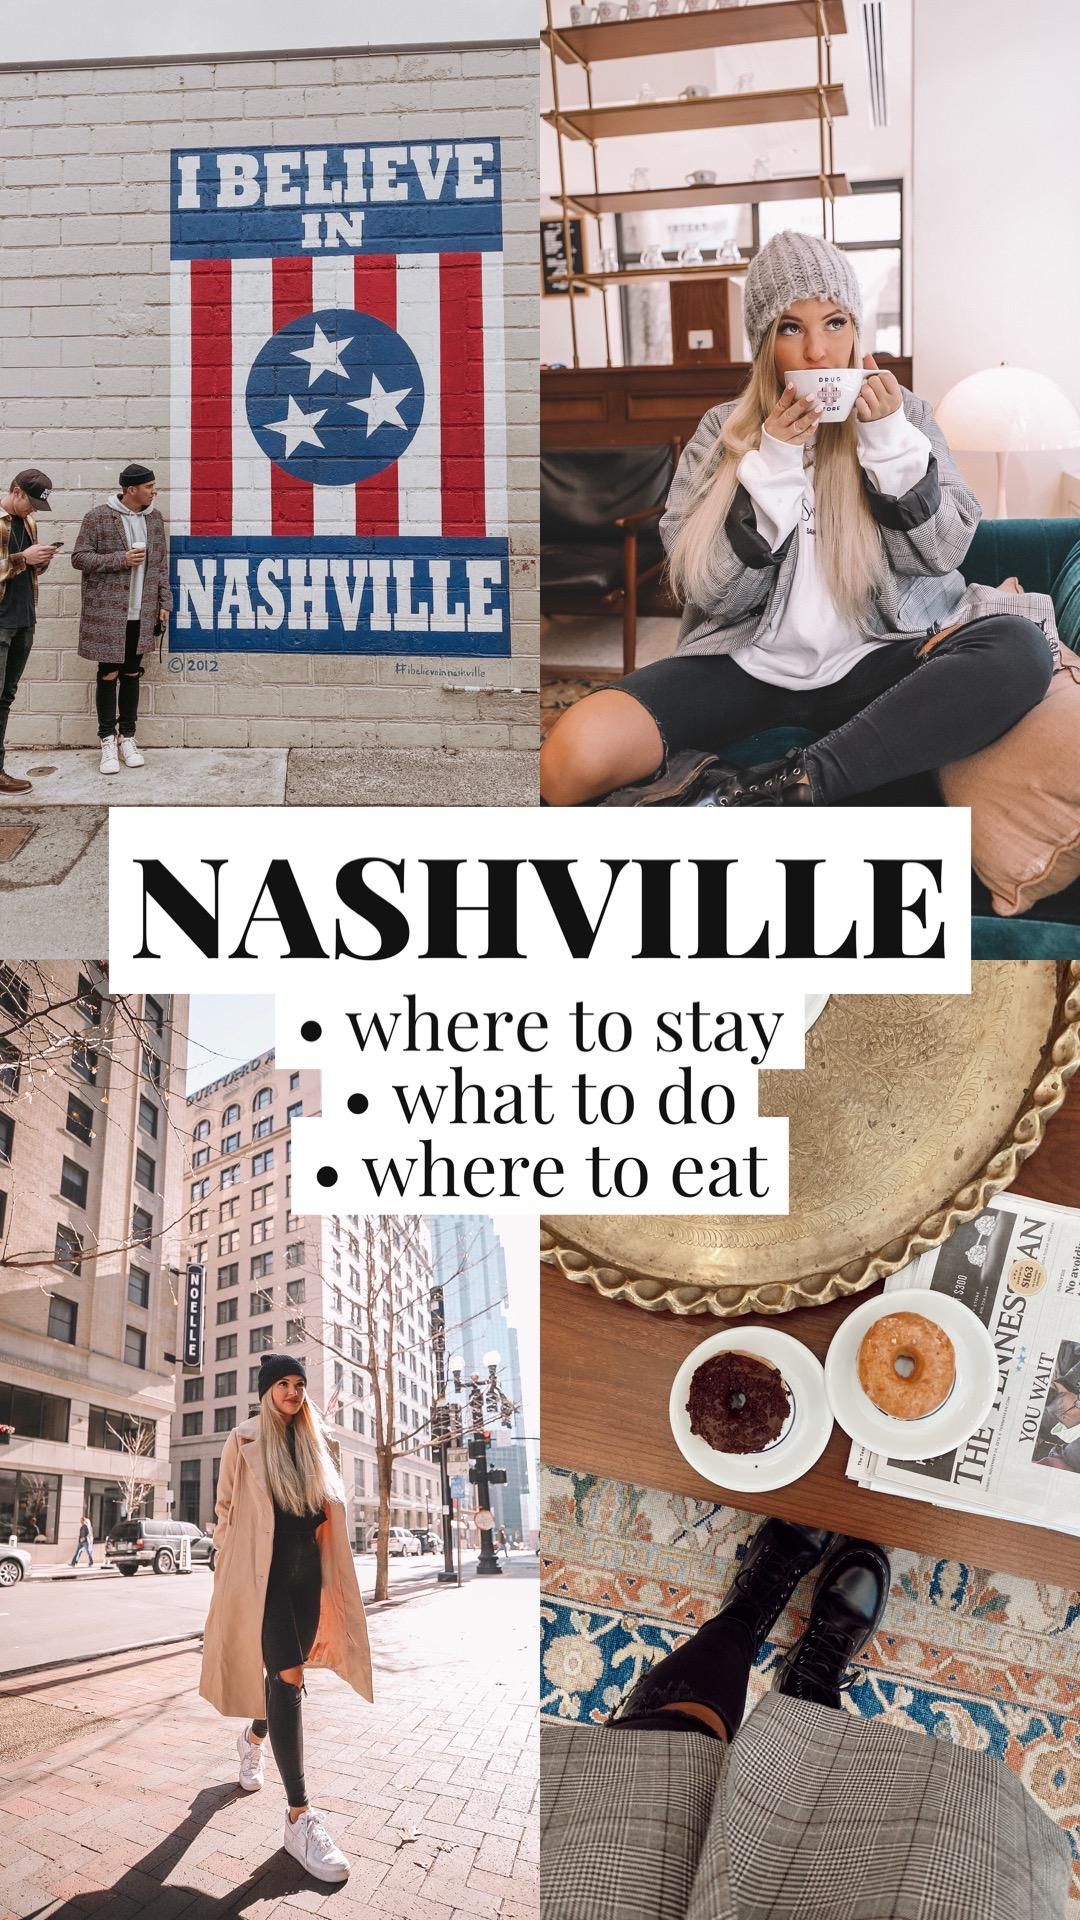 NASHVILLE: where to stay, what to do, where to eat!